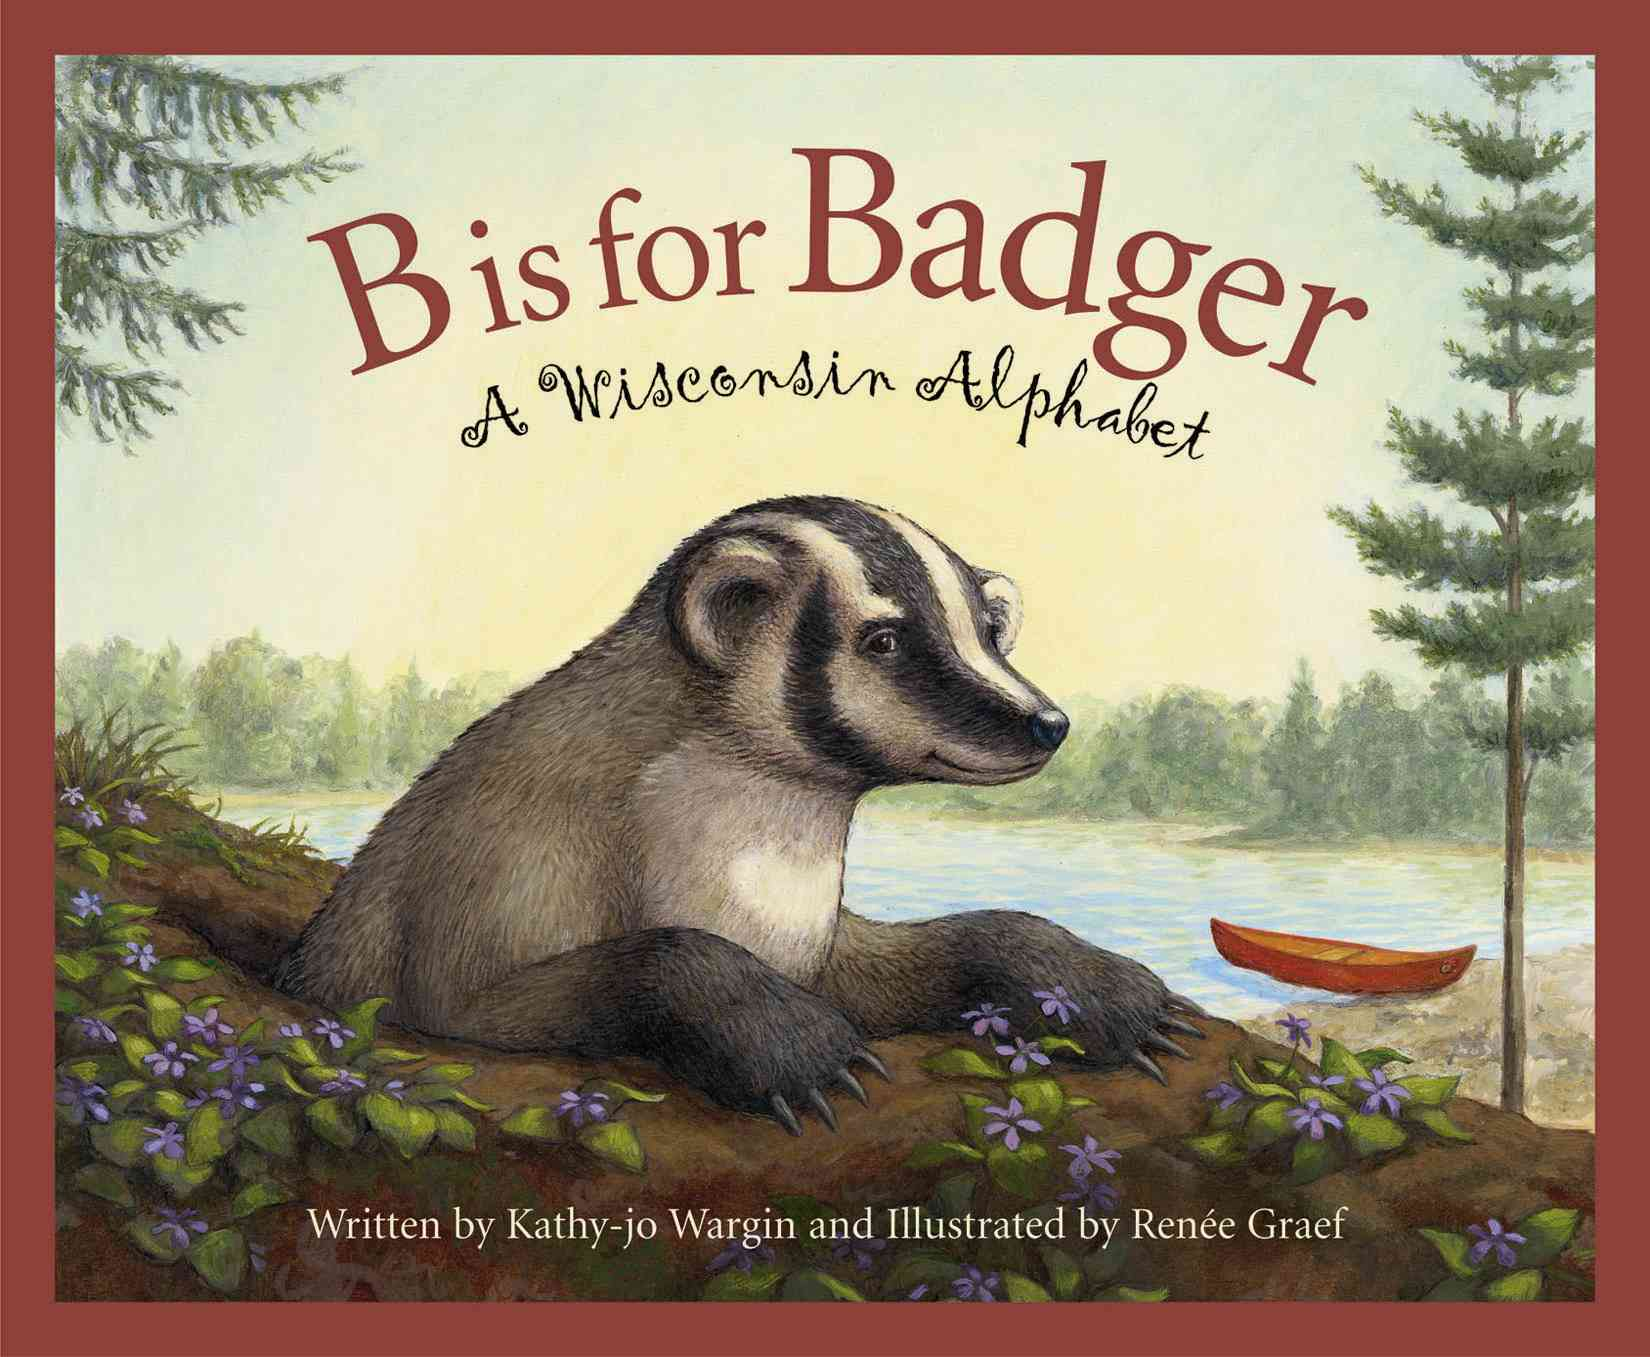 B Is for Badger: A Wisconsin Alphabet (Hardcover)